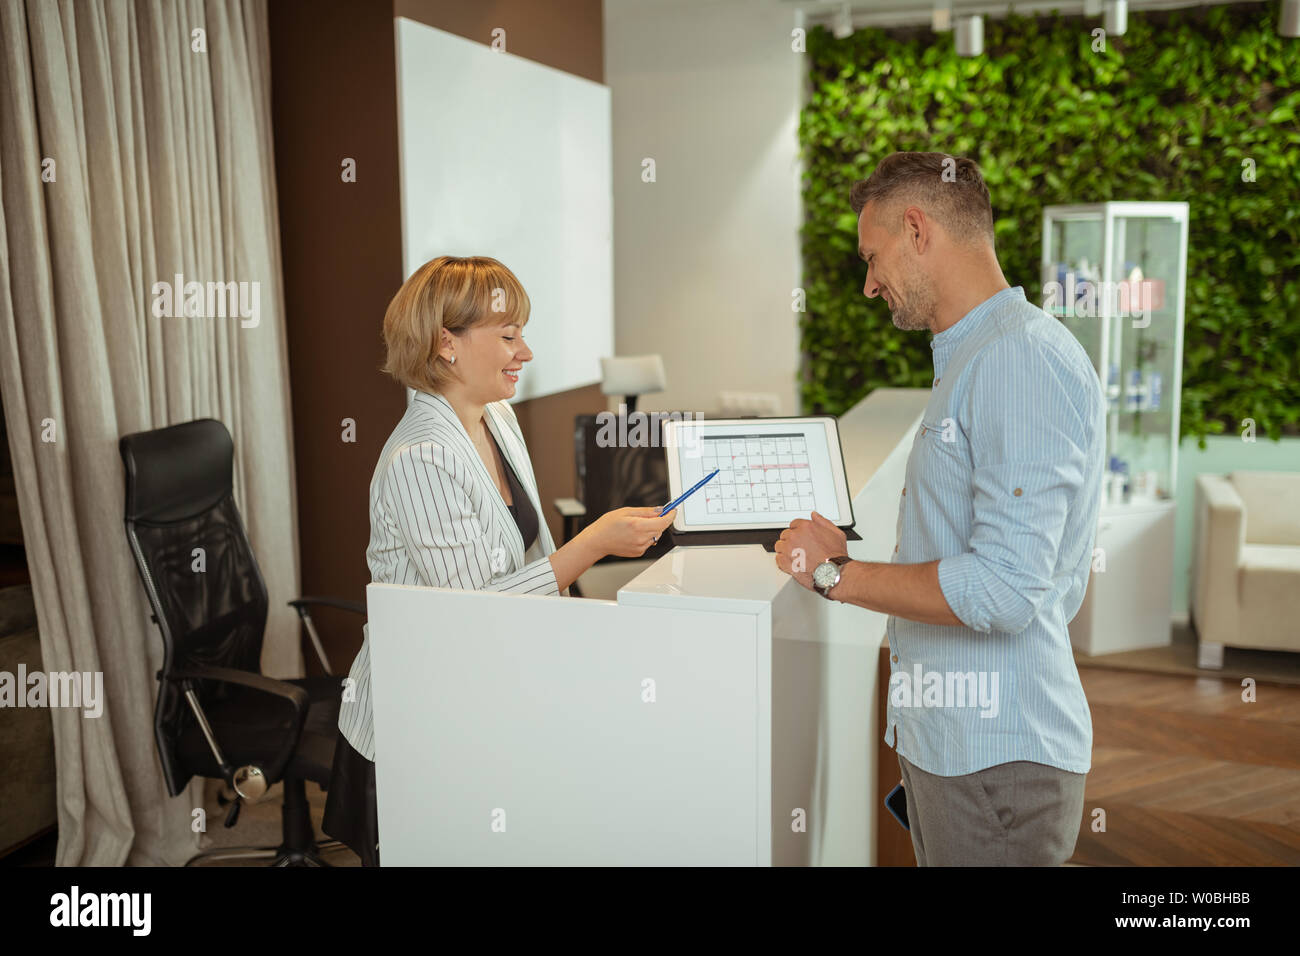 Administrator talking to client and scheduling next meeting - Stock Image